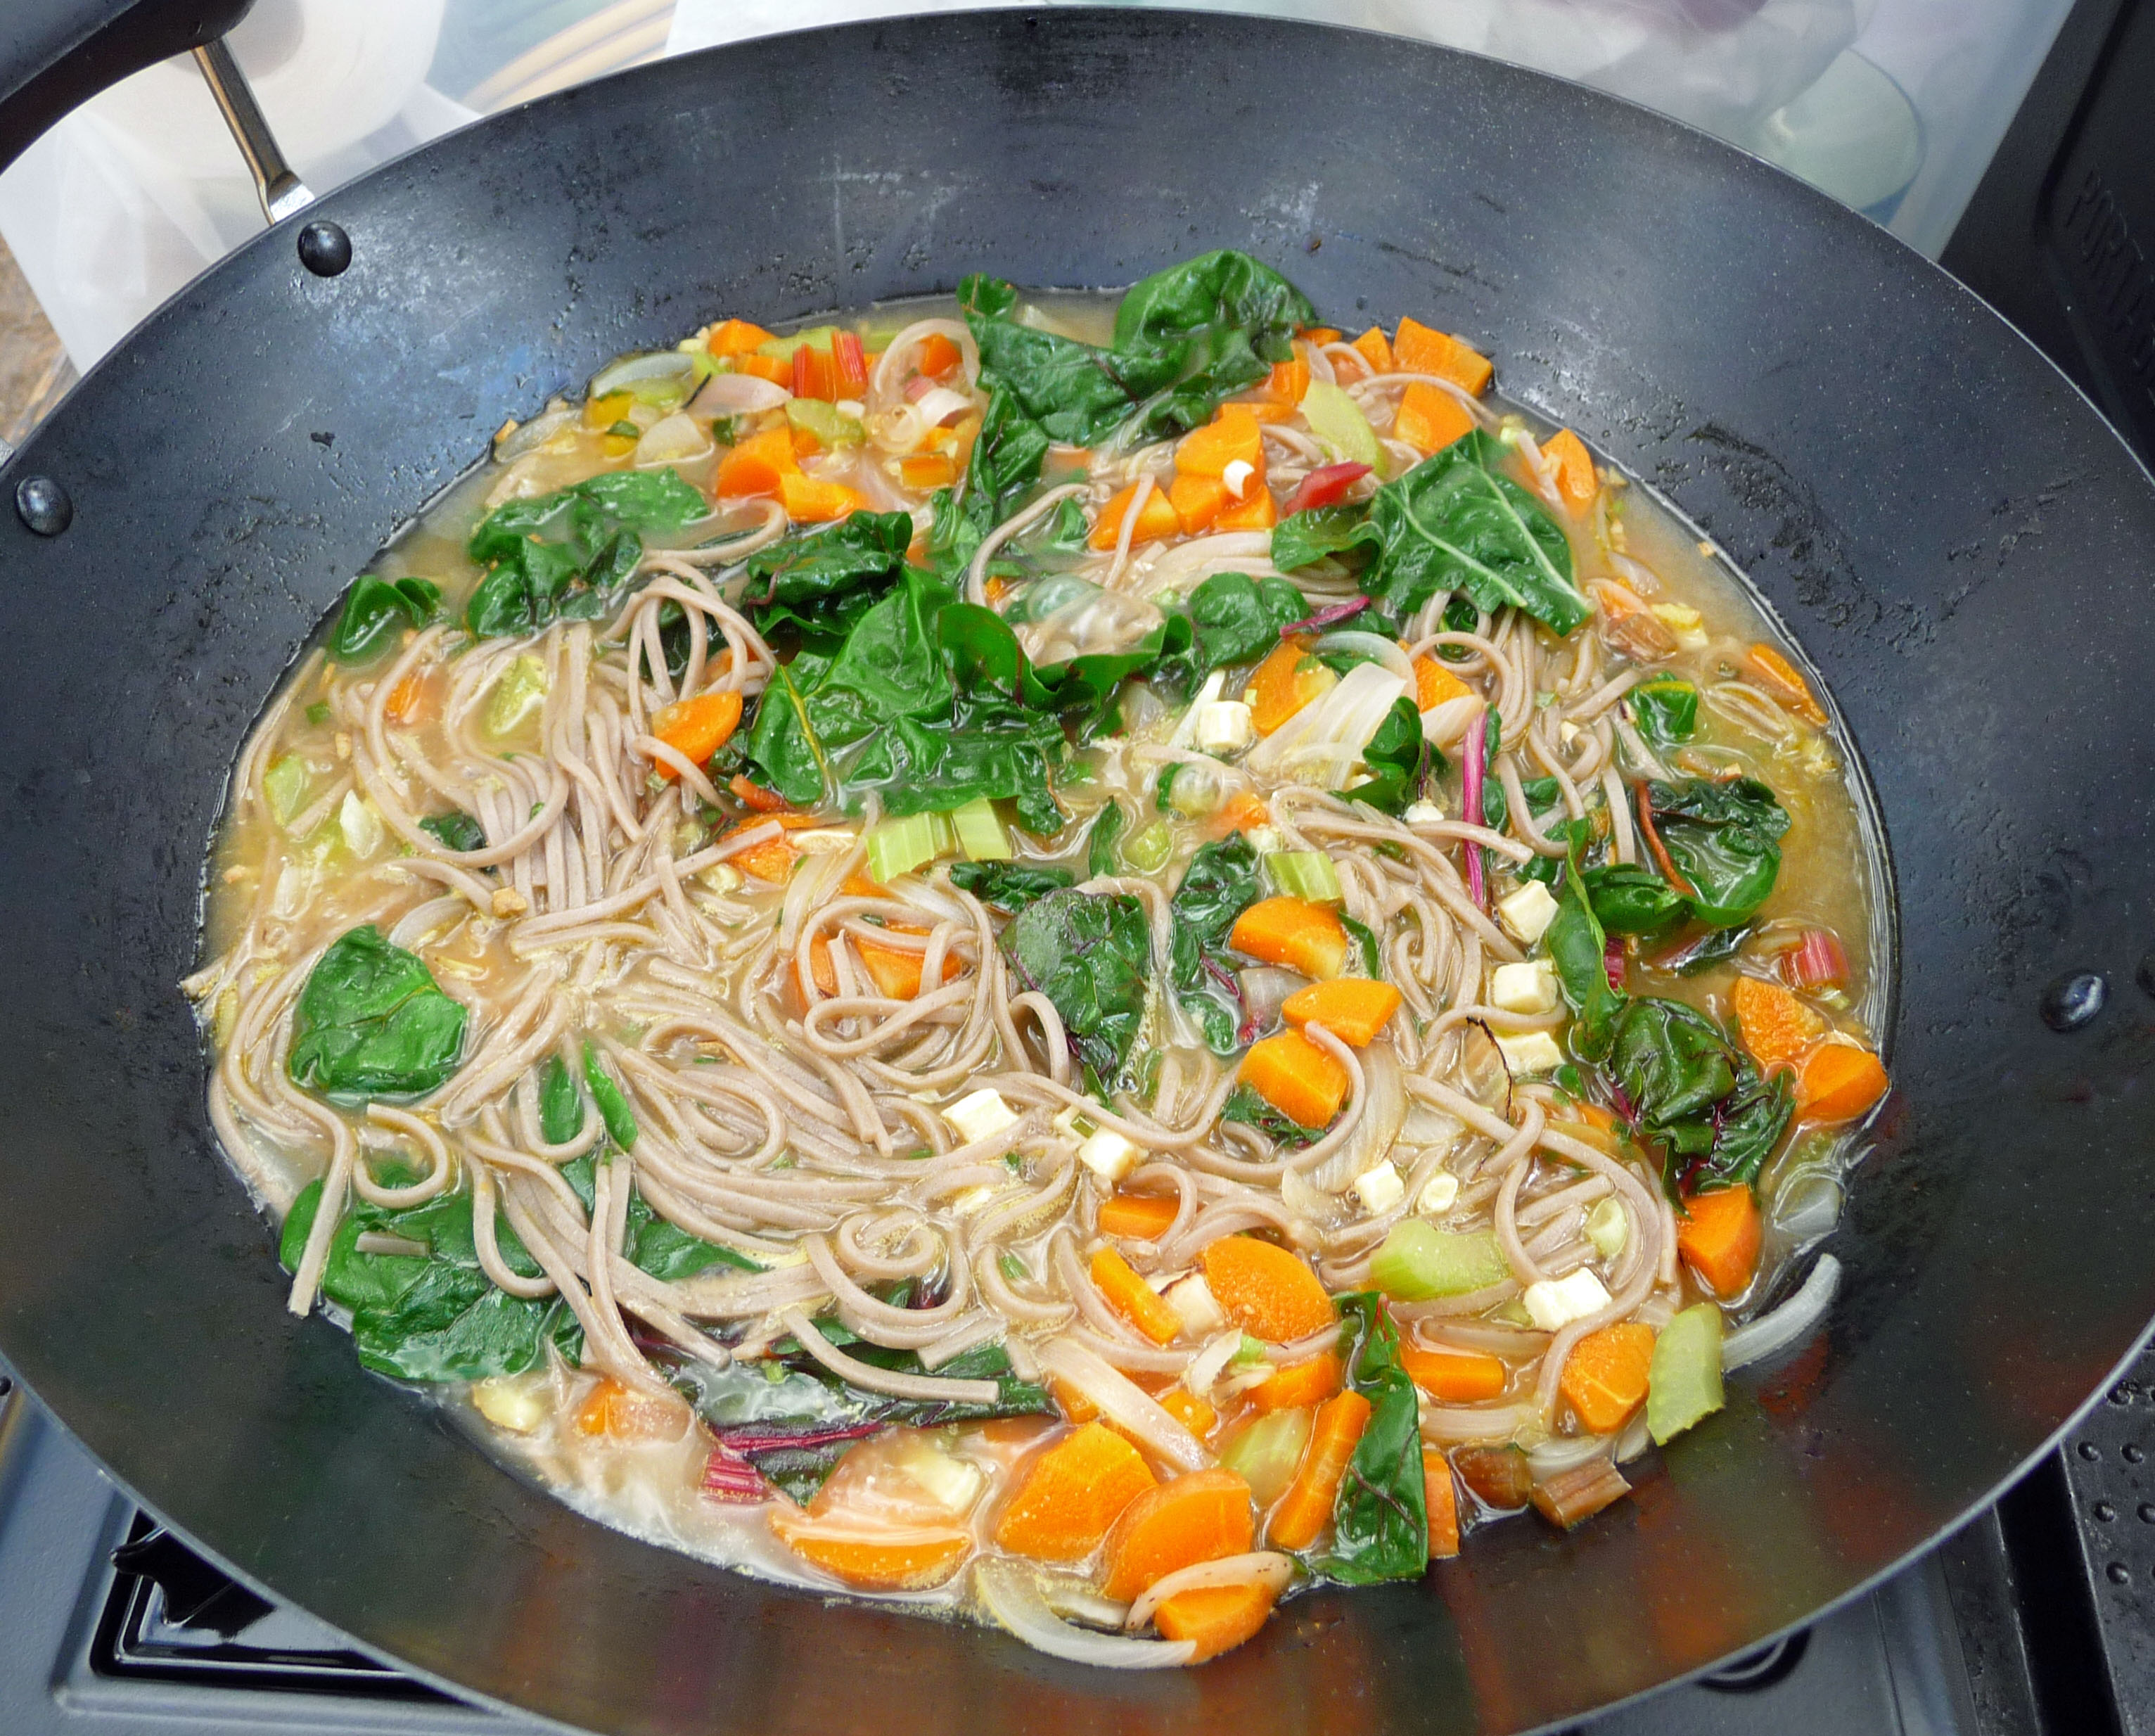 Miso Soup With Vegetables And Soba Noodles